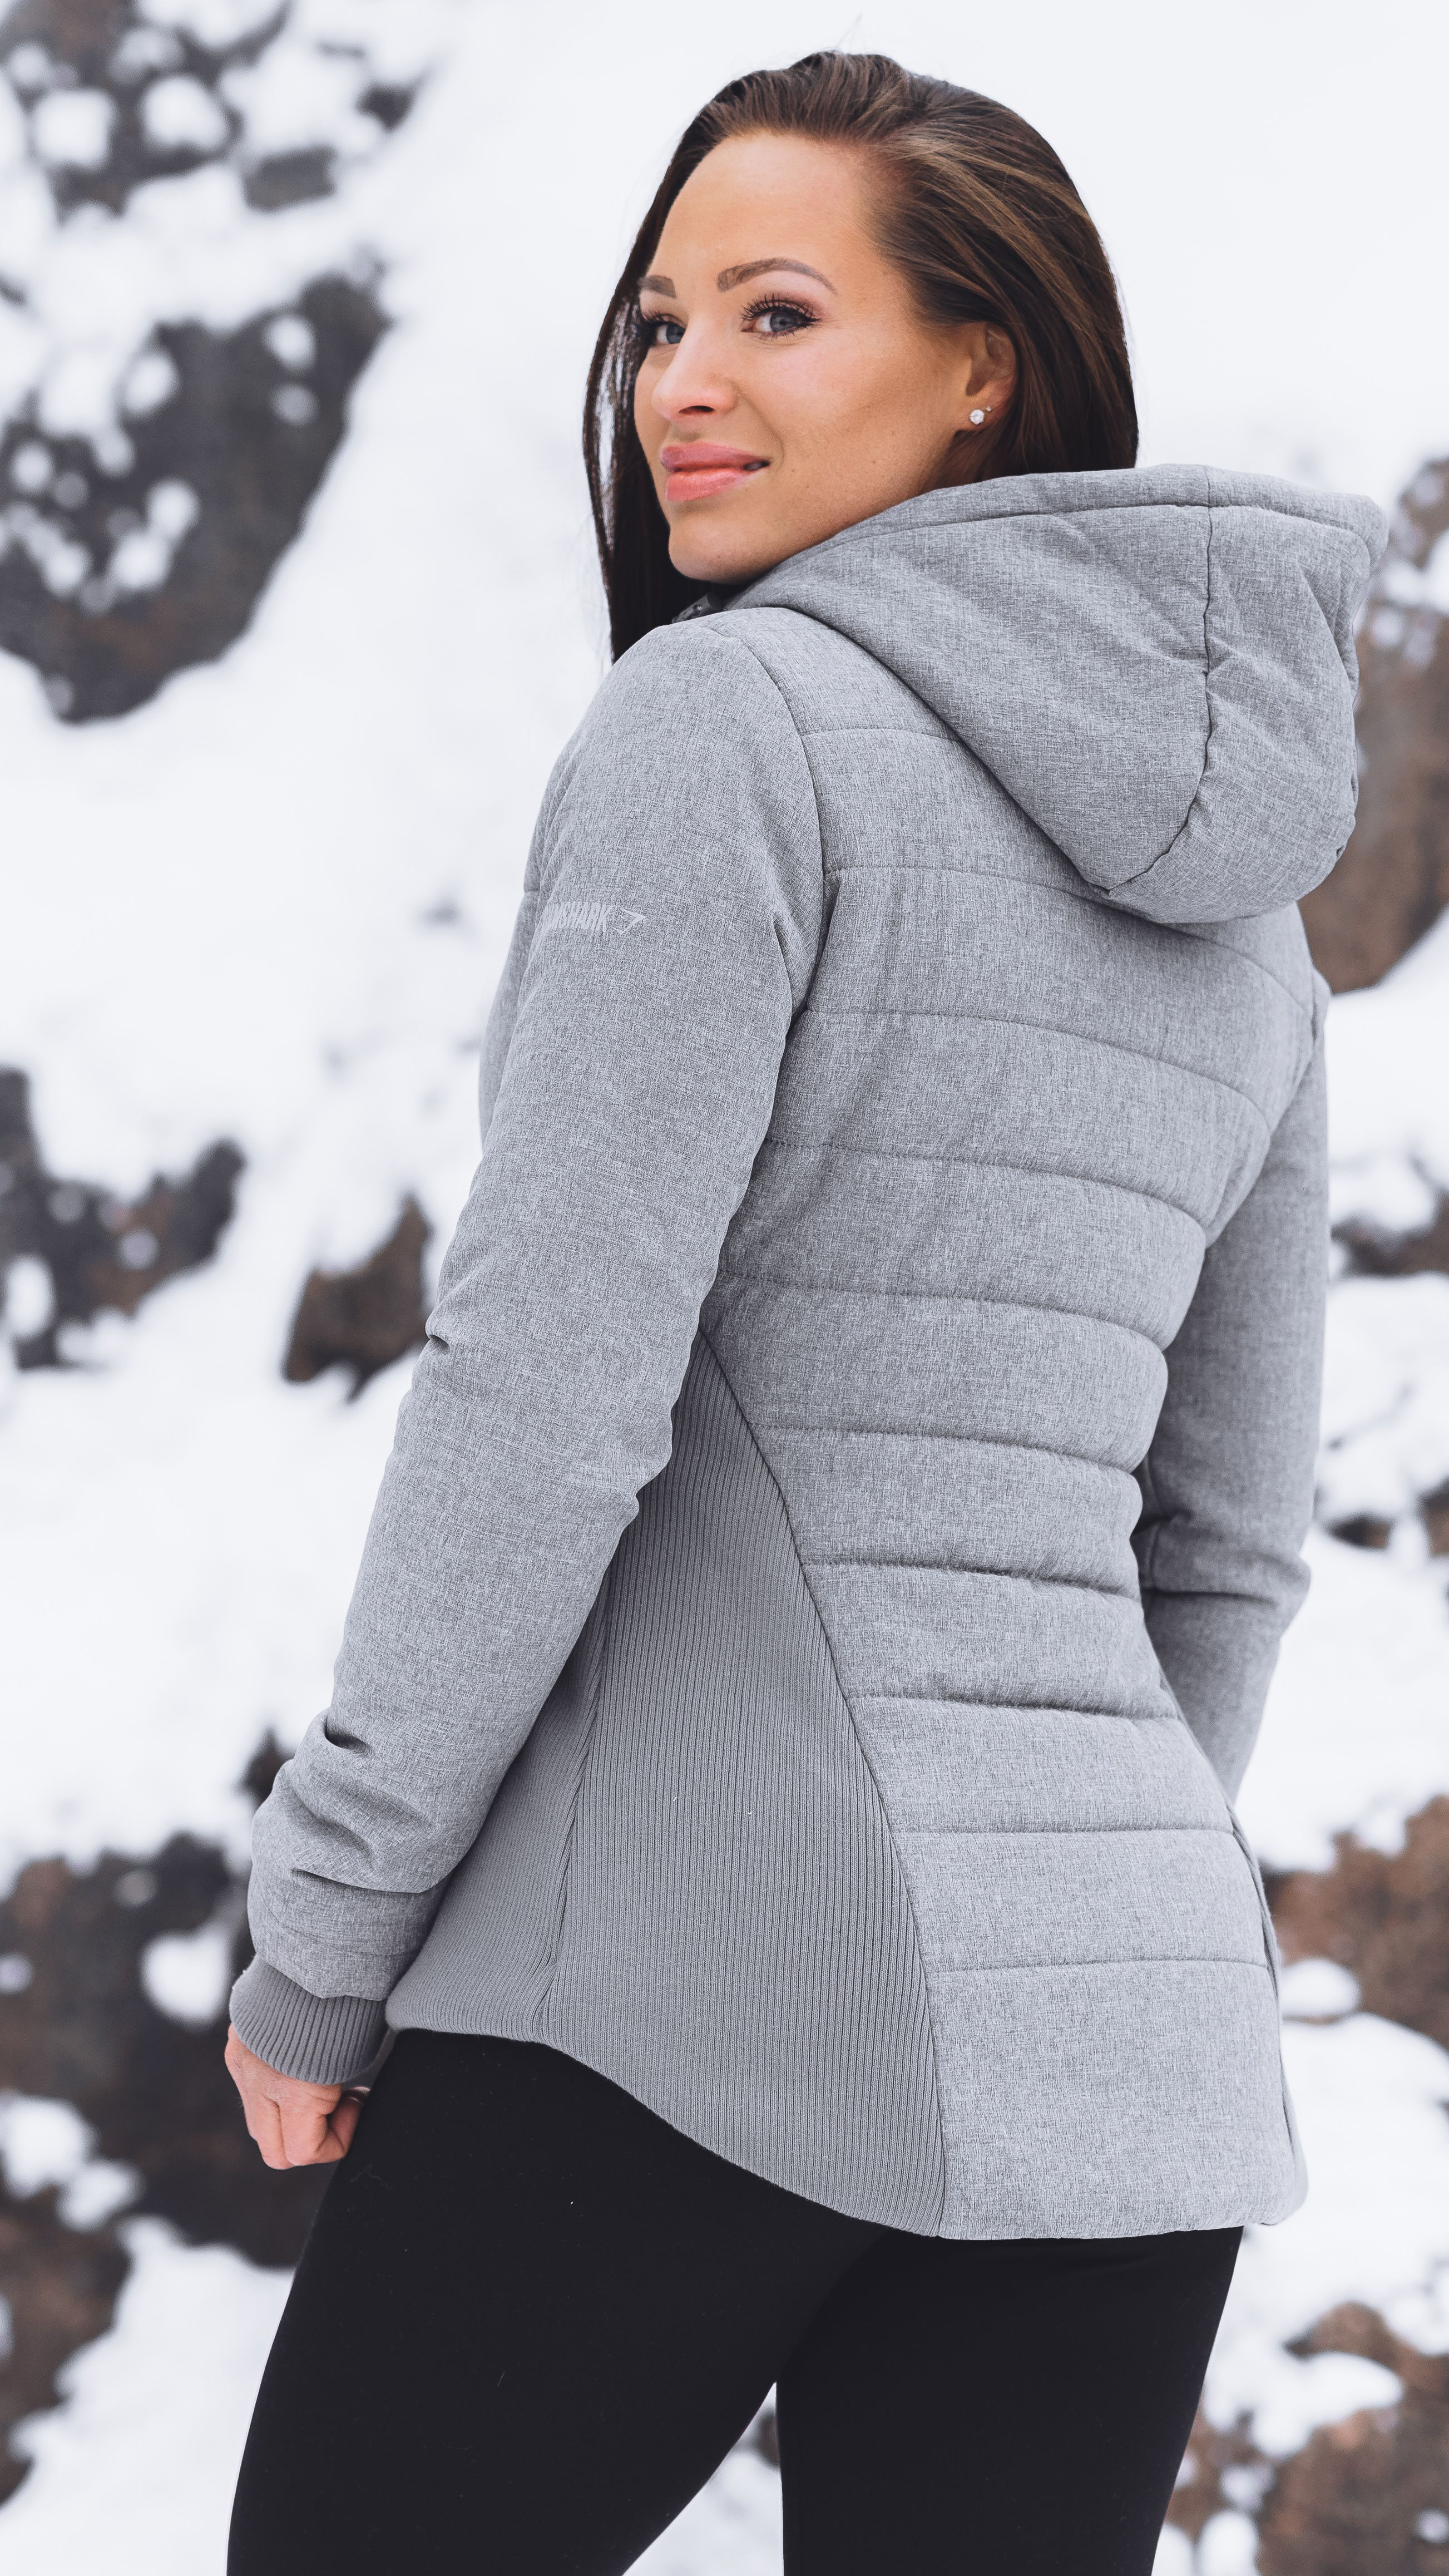 The Reflective Logo Of The Gymshark Mellow Puffer Jacket Ensures You Stay Visible As The Days Get Sho Winter Fashion Outfits Puffer Jackets Fall Winter Outfits [ 4630 x 2605 Pixel ]